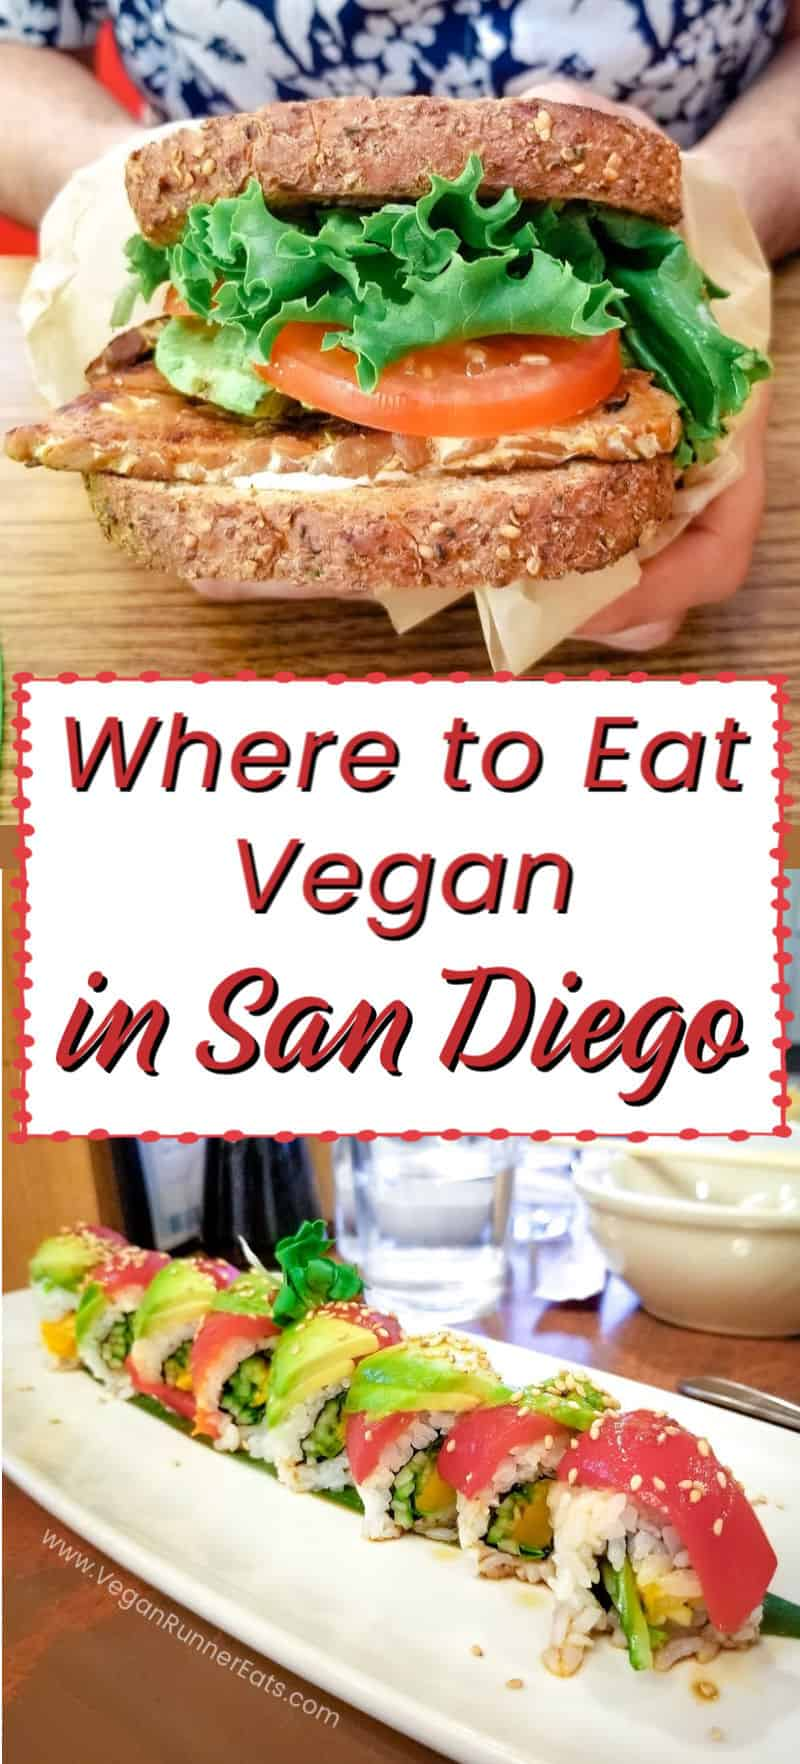 San Diego vegan restaurants and tips for finding vegan food in San Diego. Shown: tempeh sandwich at Evolution Fast Food, and Fiesta Rolo at NoW Sushi. | Vegan Runner Eats